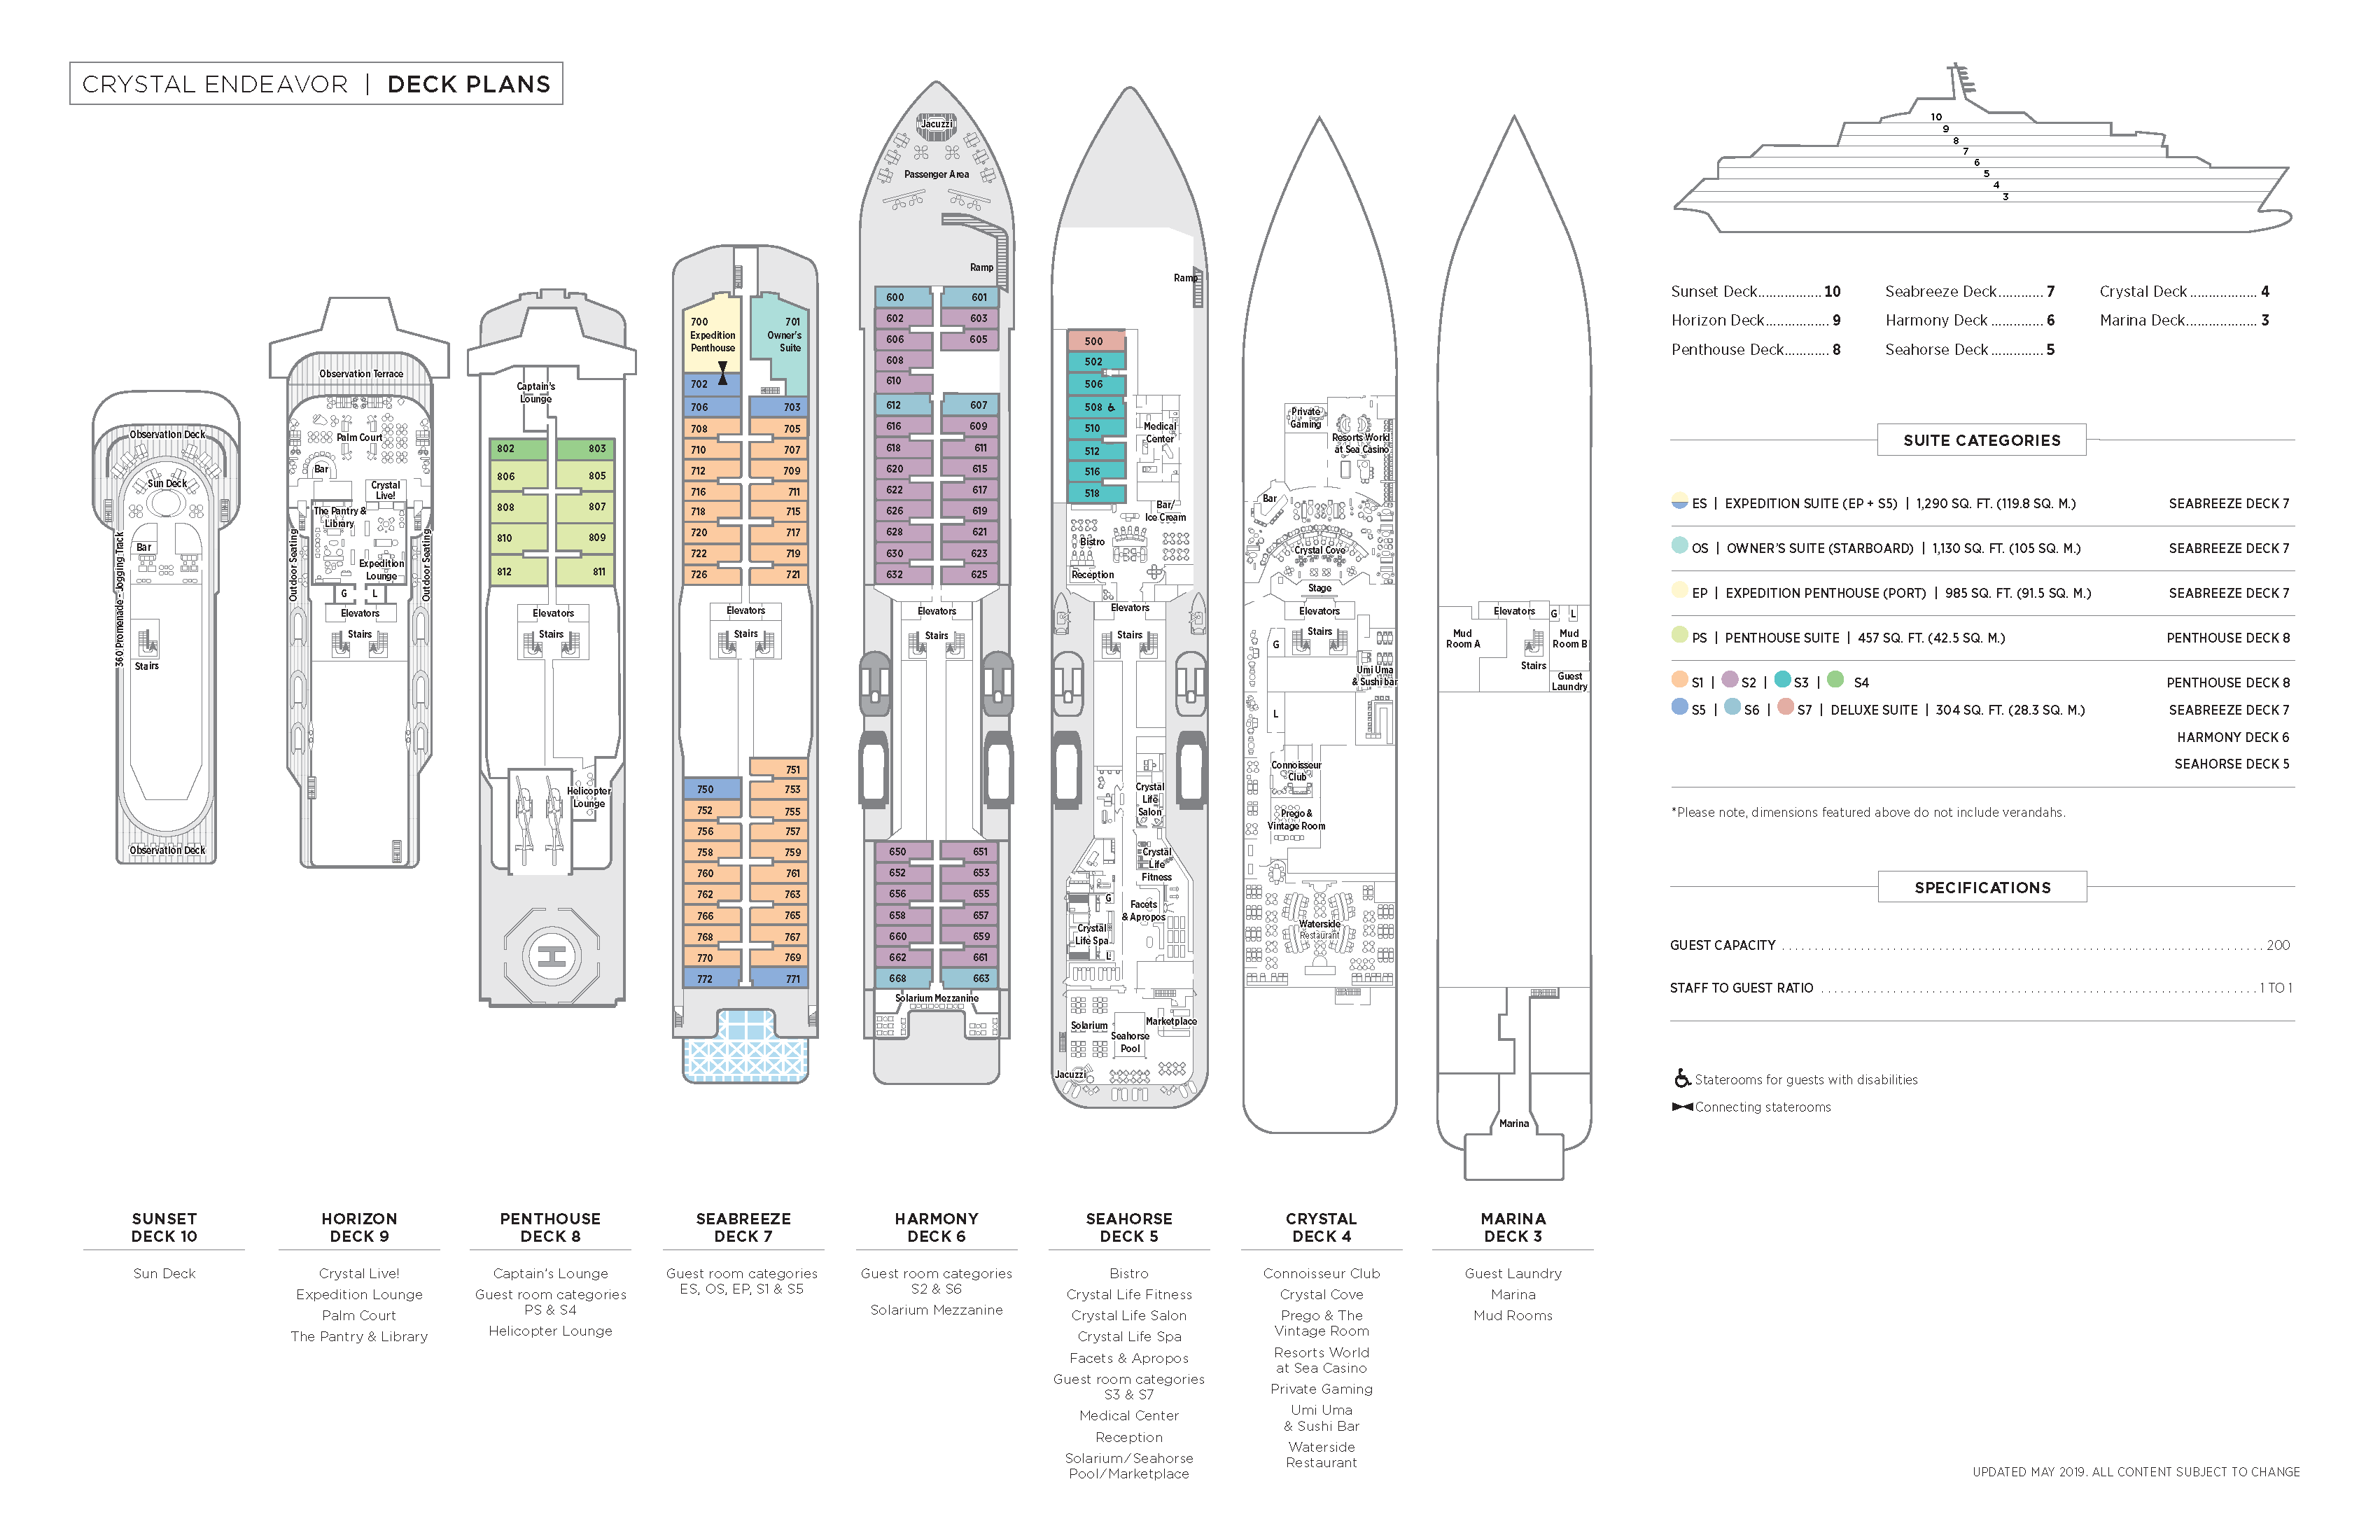 crystal endeavor deck plan